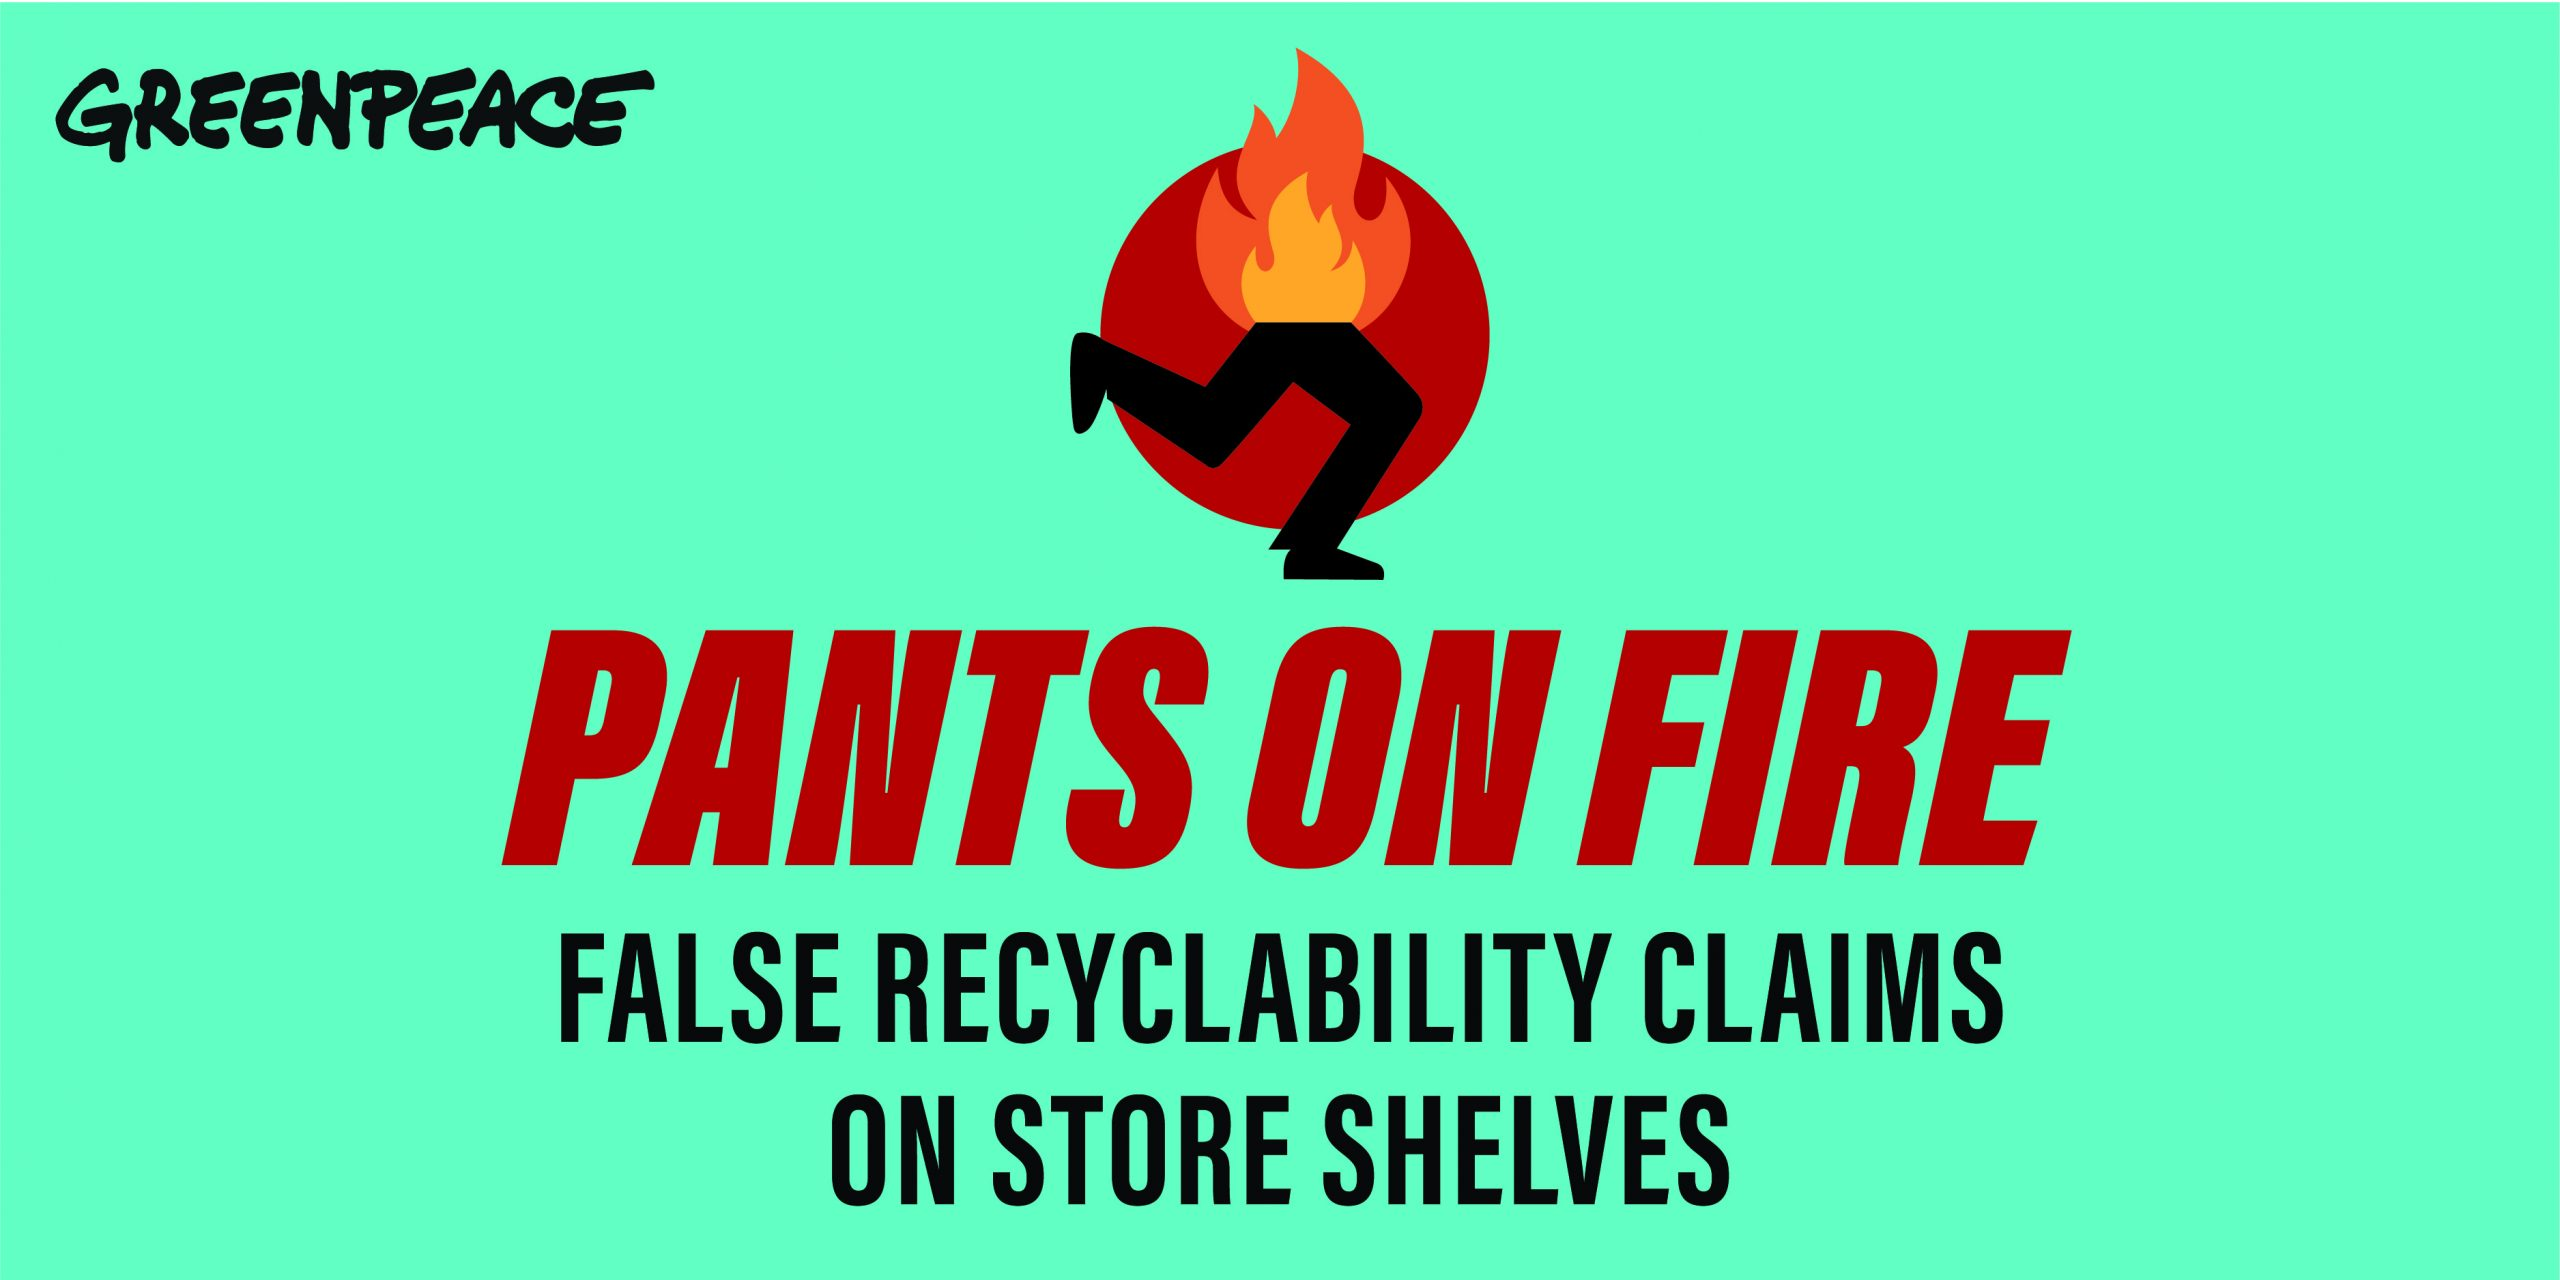 Pants of fire: false recyclability claims